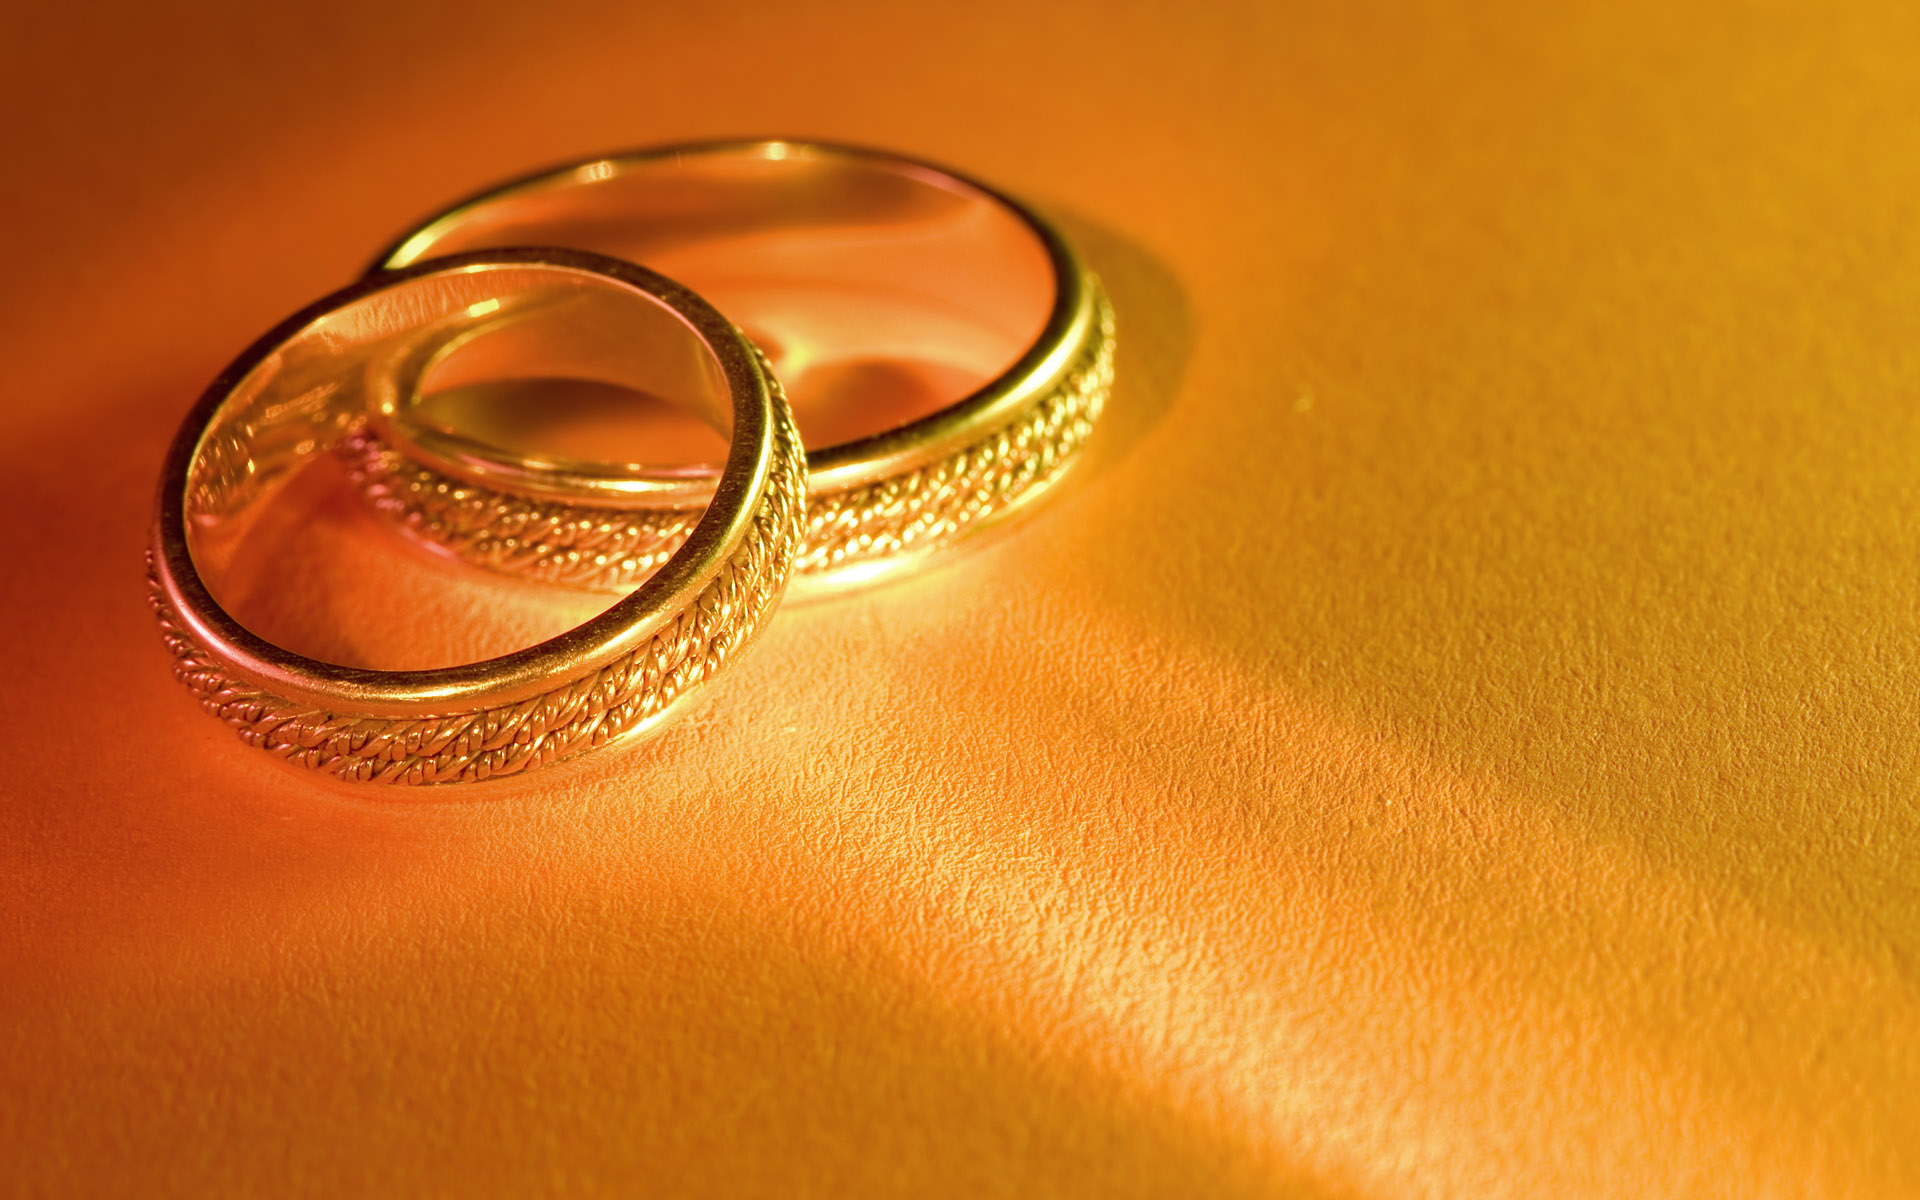 ring jewelry hd wallpapers cool desktop backgrounds ring jewelry hd 340